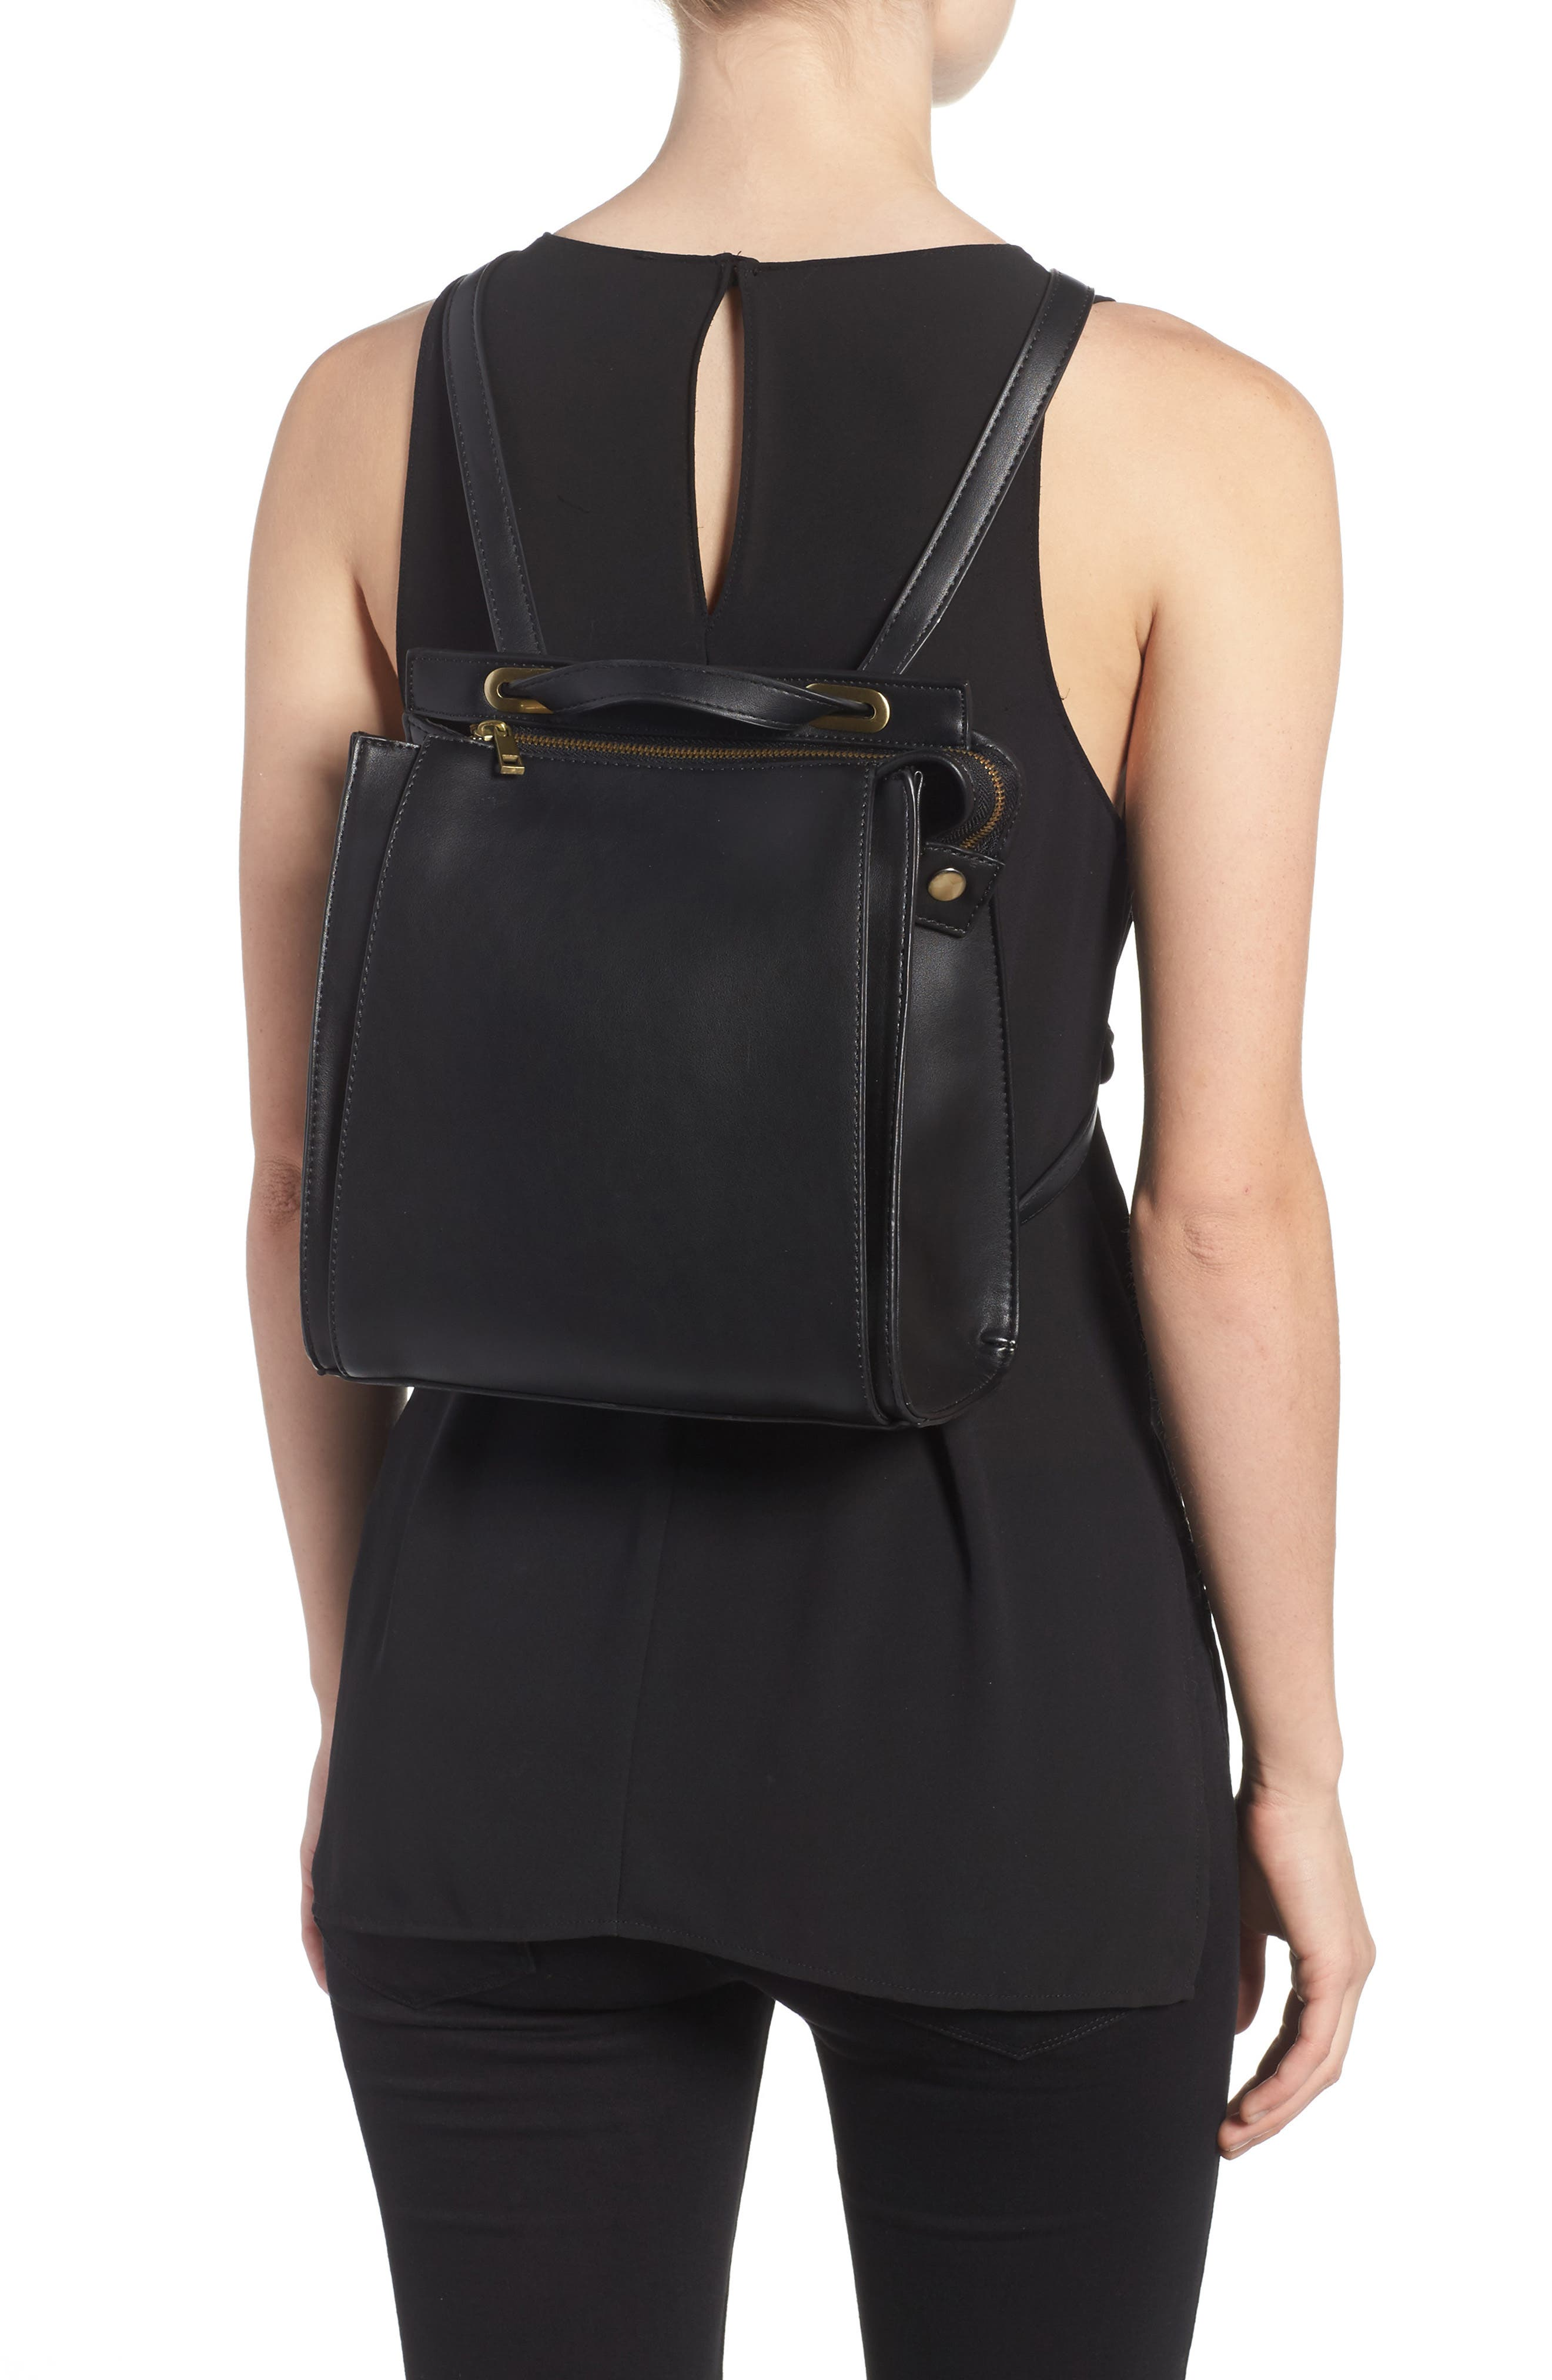 STREET LEVEL, Faux Leather Convertible Backpack, Alternate thumbnail 2, color, 002